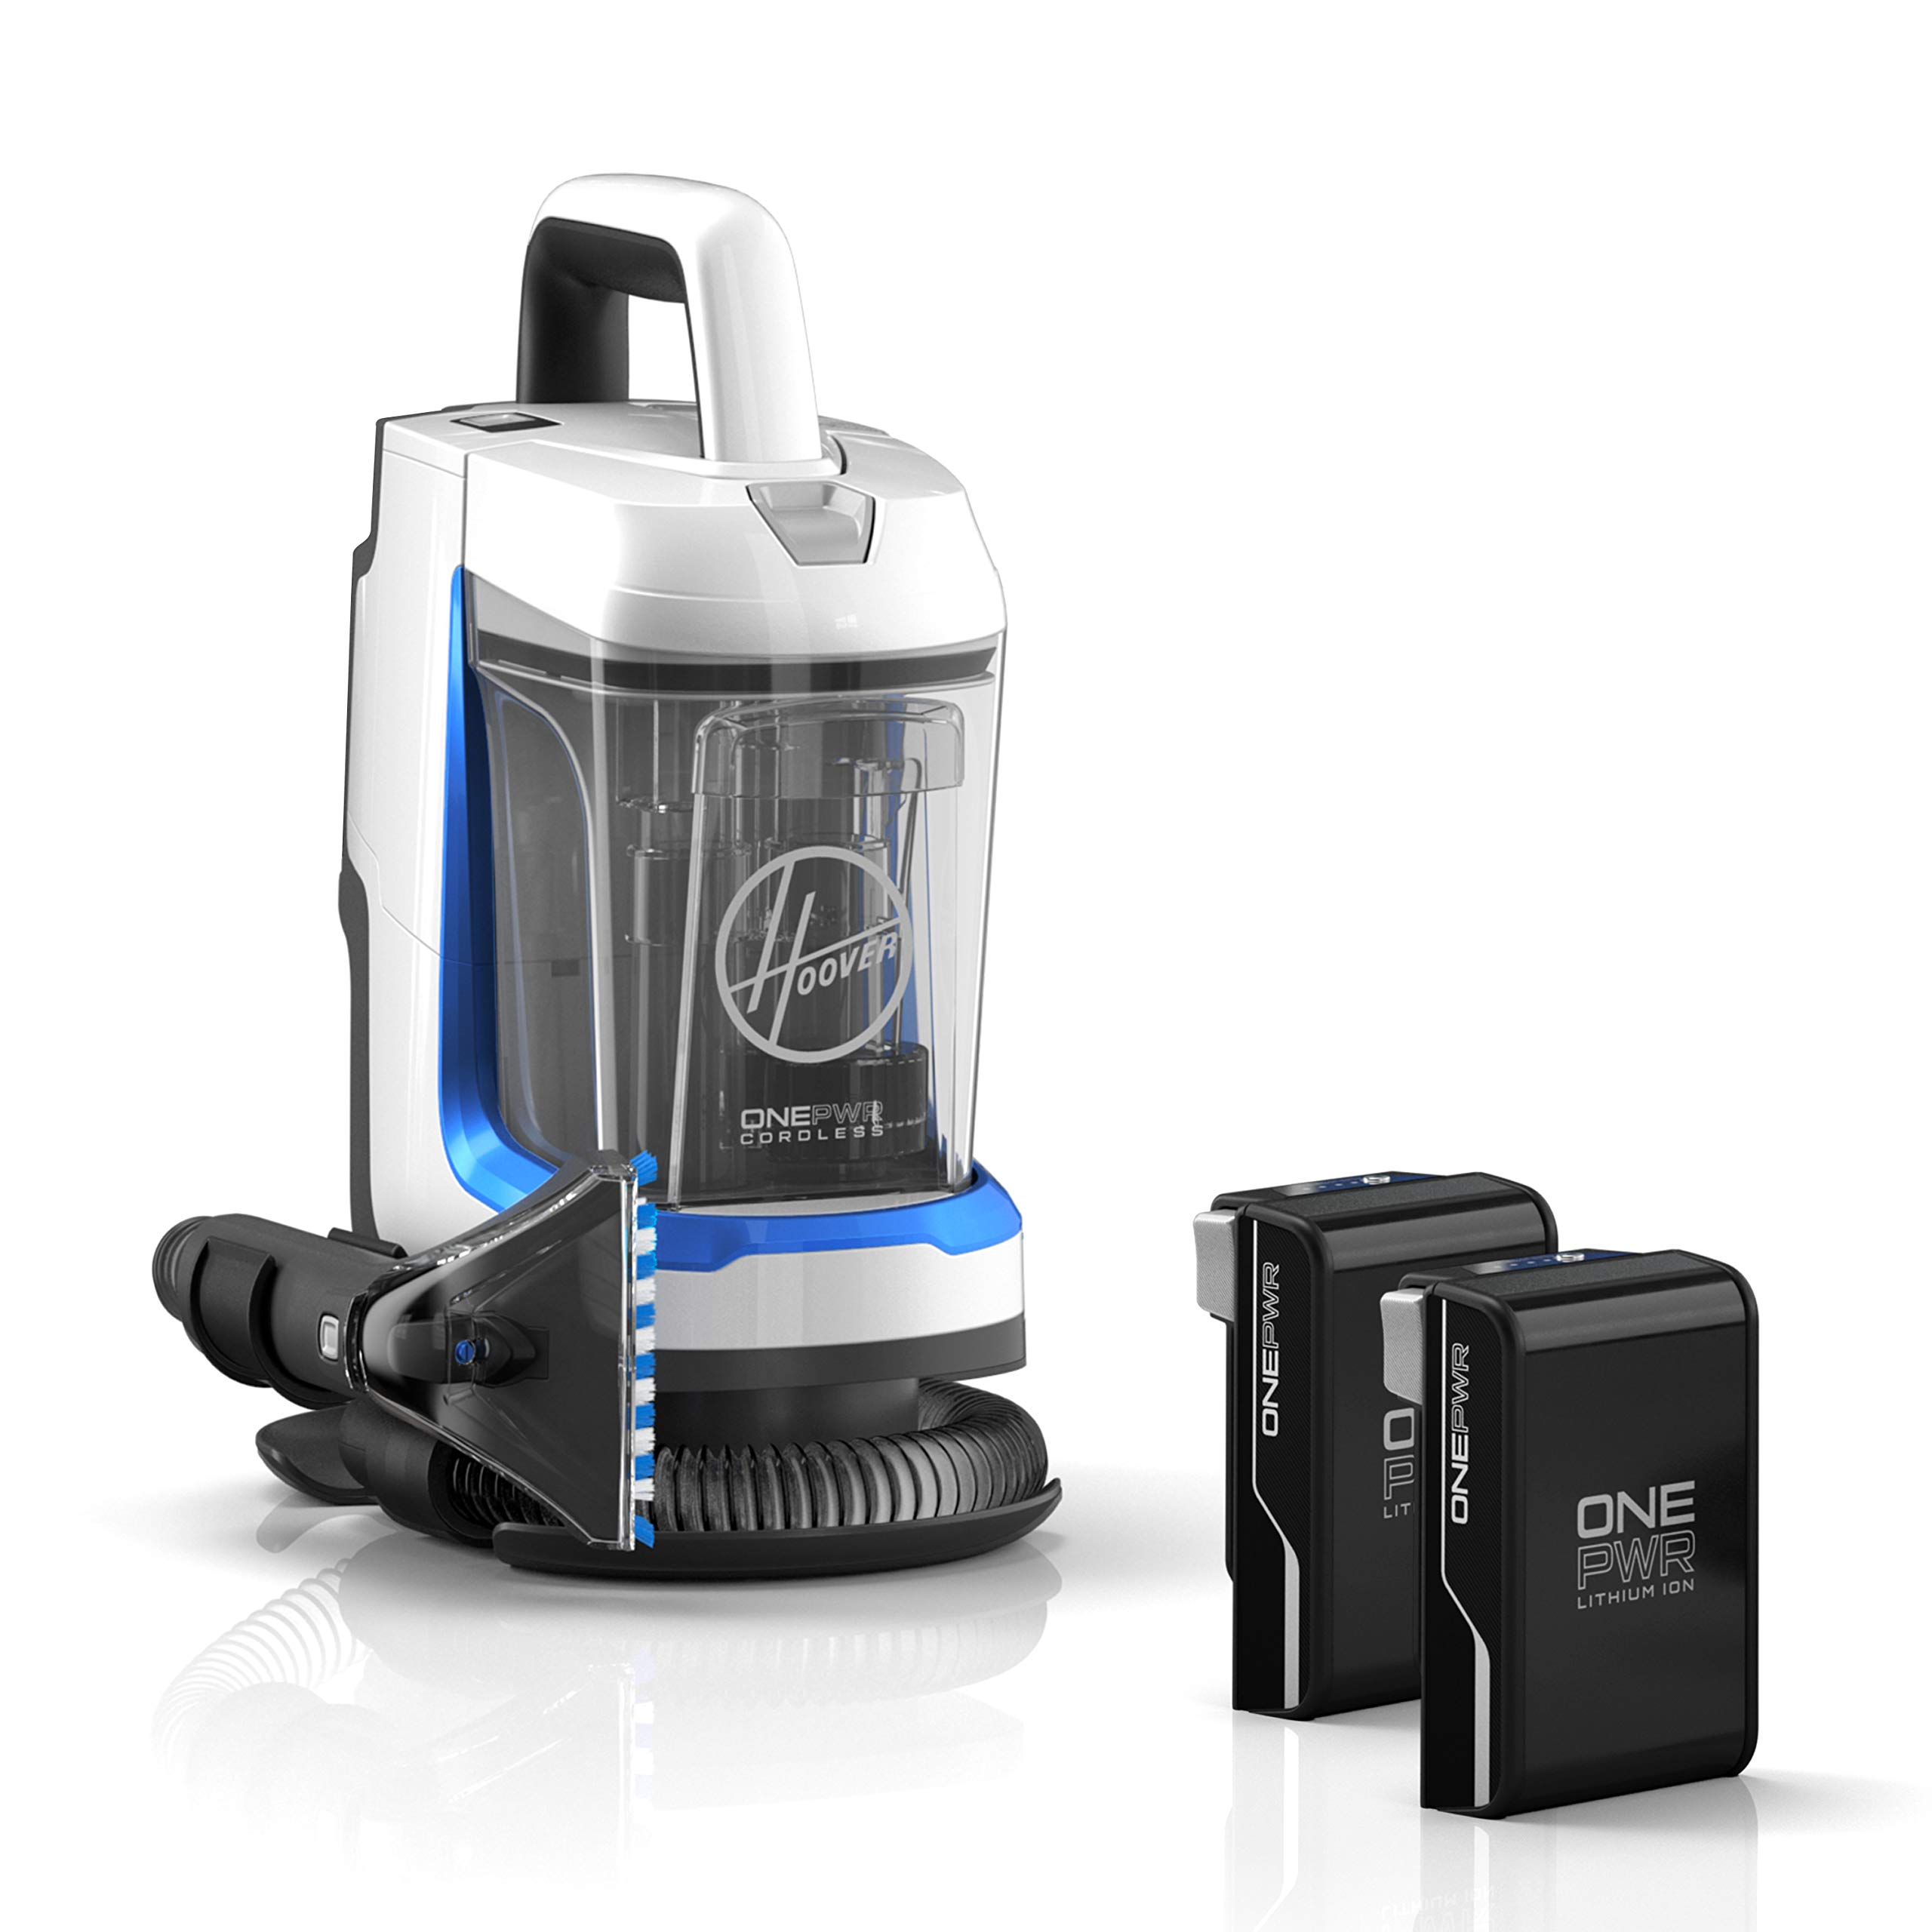 Hoover ONEPWR Spotless GO Cordless Carpet and Upholstery Cleaner with Additional 3Ah Battery